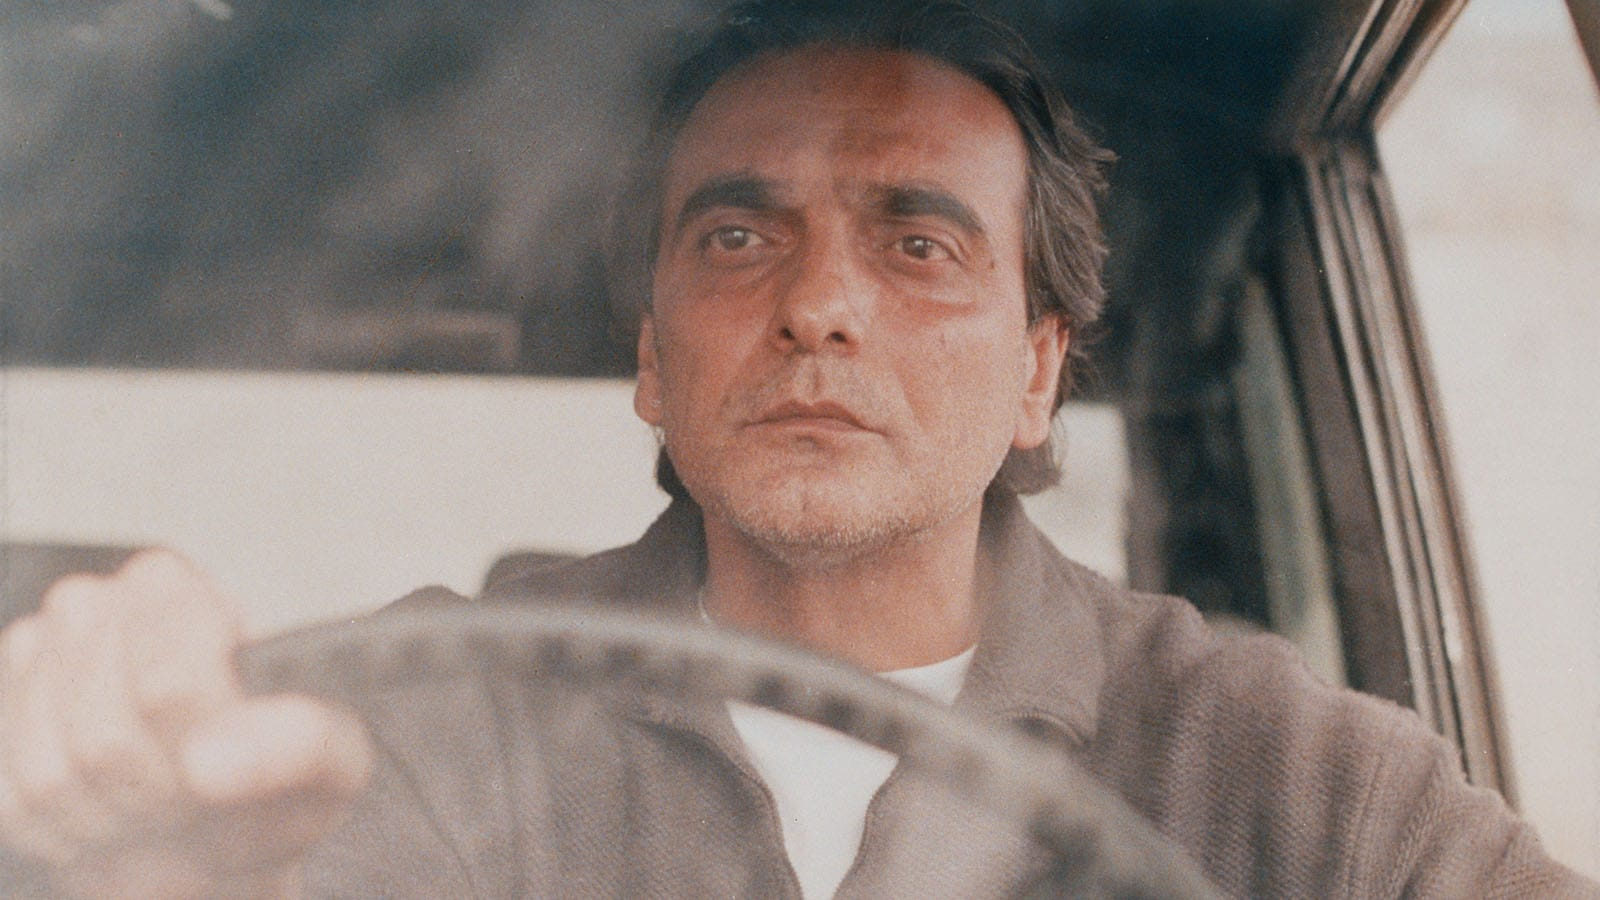 Arte Replay Film Portrait De Femme Kiarostami Fq And More The Current The Criterion Collection